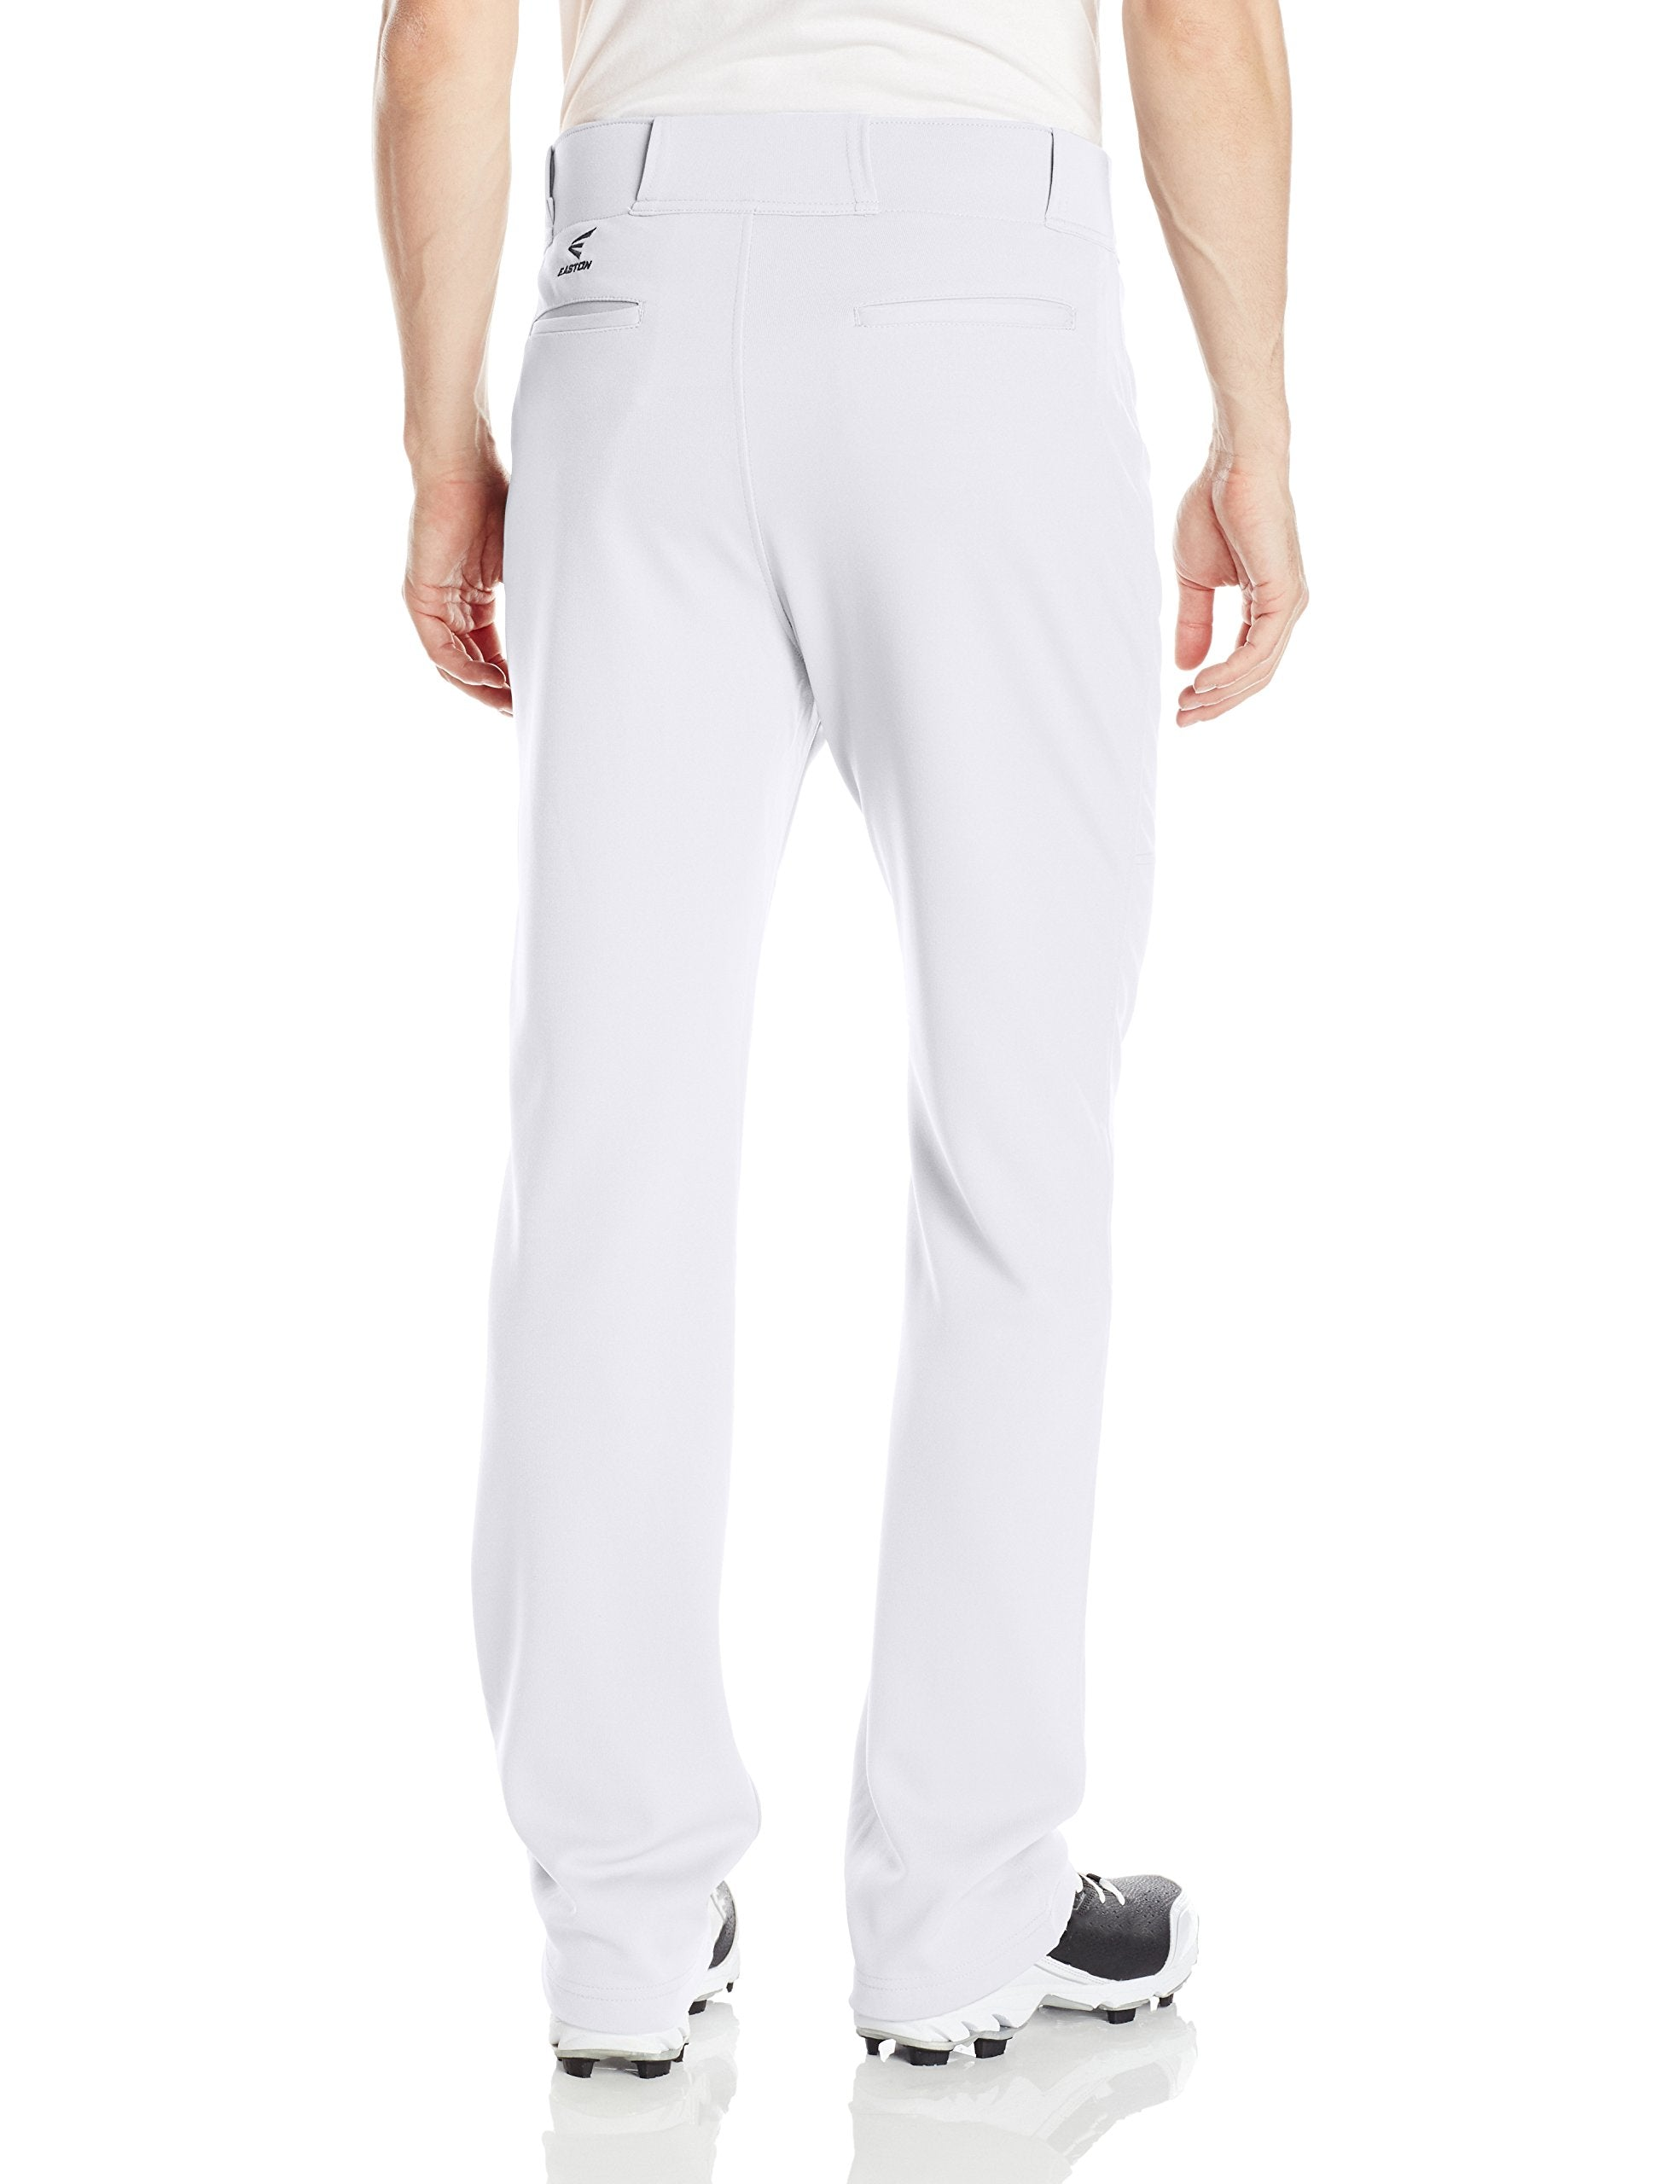 EASTON RIVAL 2 Baseball Softball Pant  | White | 2020 | Double Reinforced Knee | 100% Polyester - Ctfitnesswear